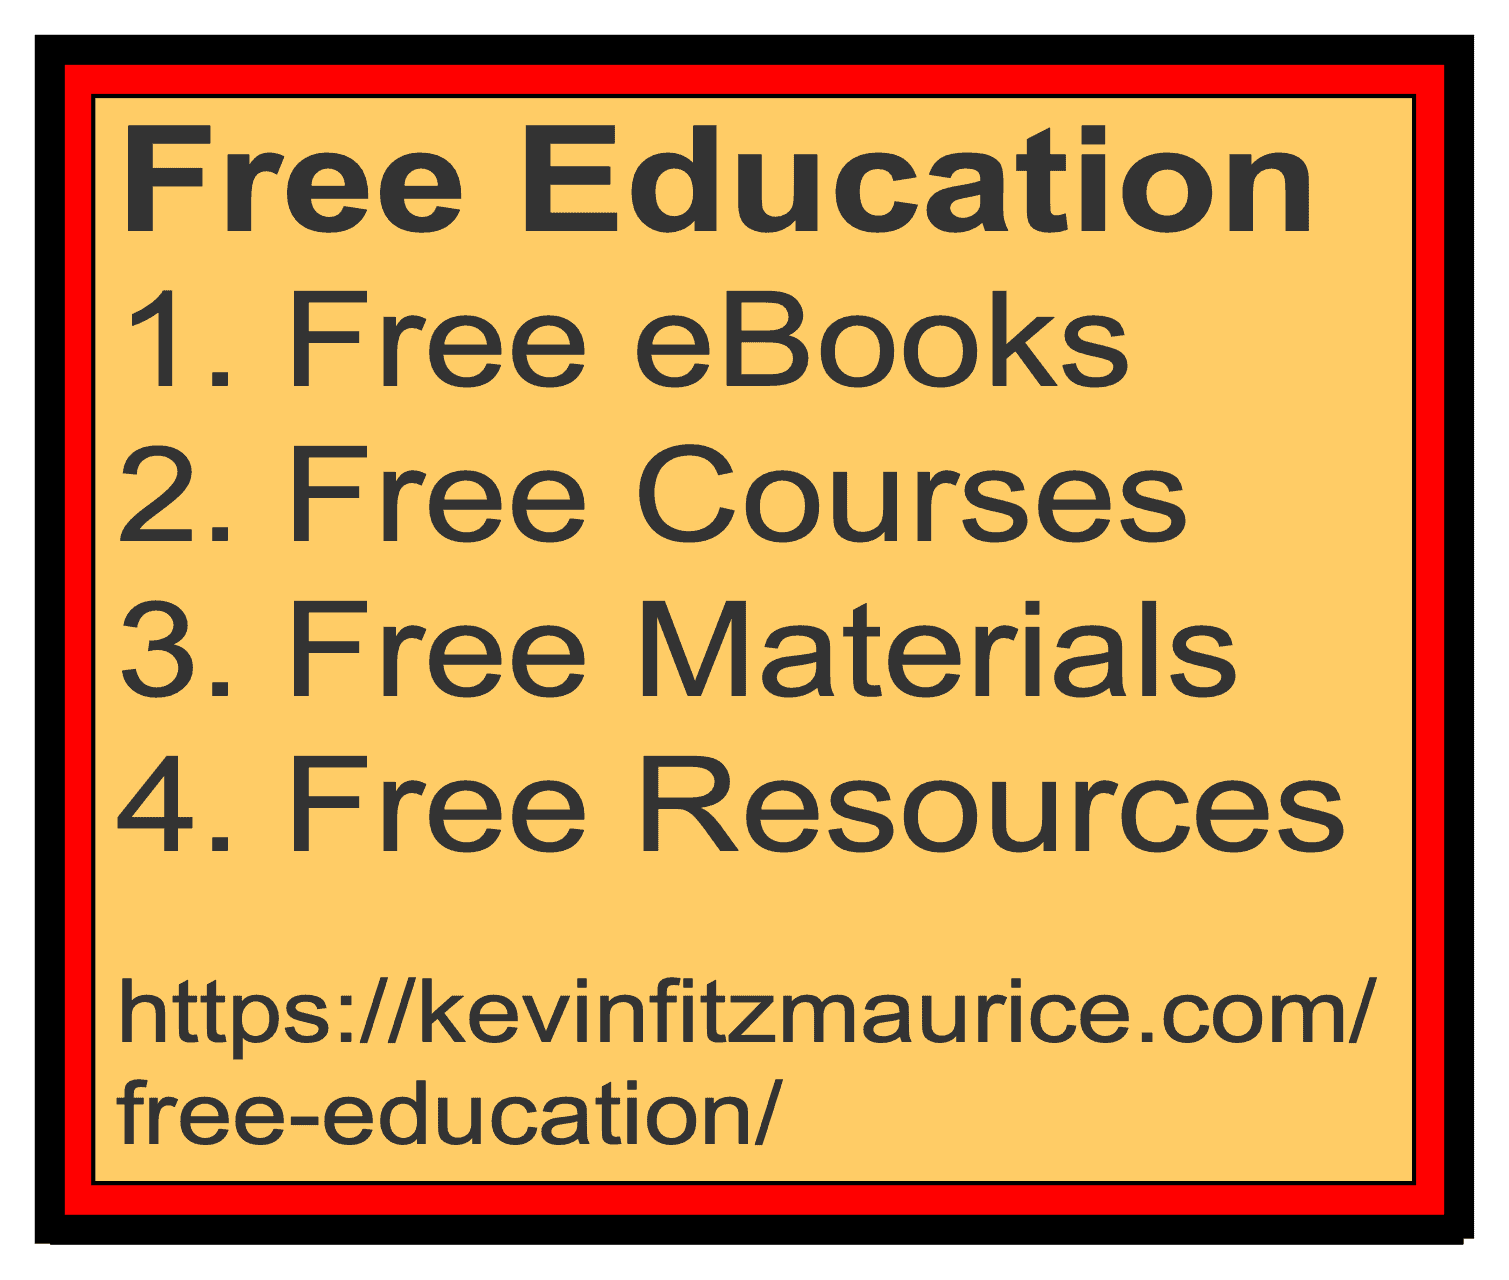 Free Education Lists